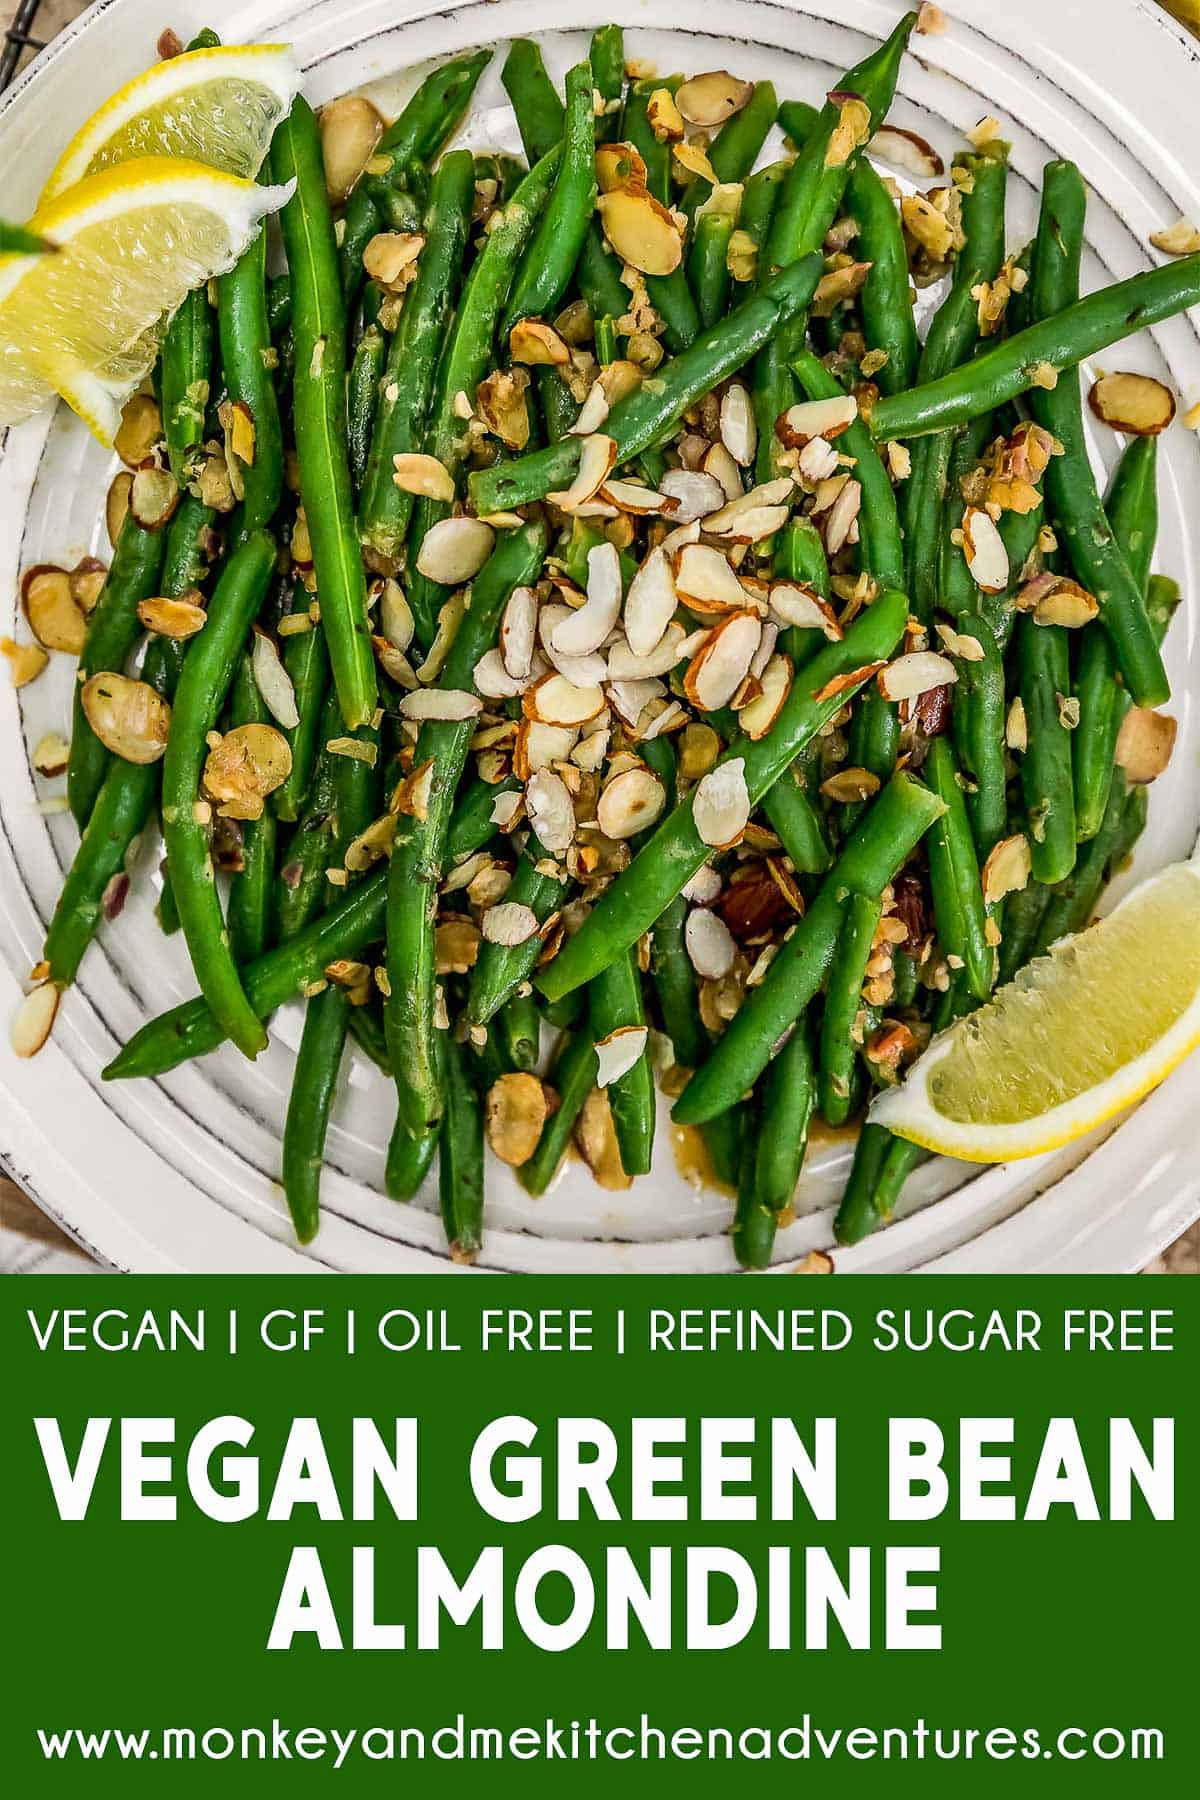 Vegan Green Bean Almondine with text description